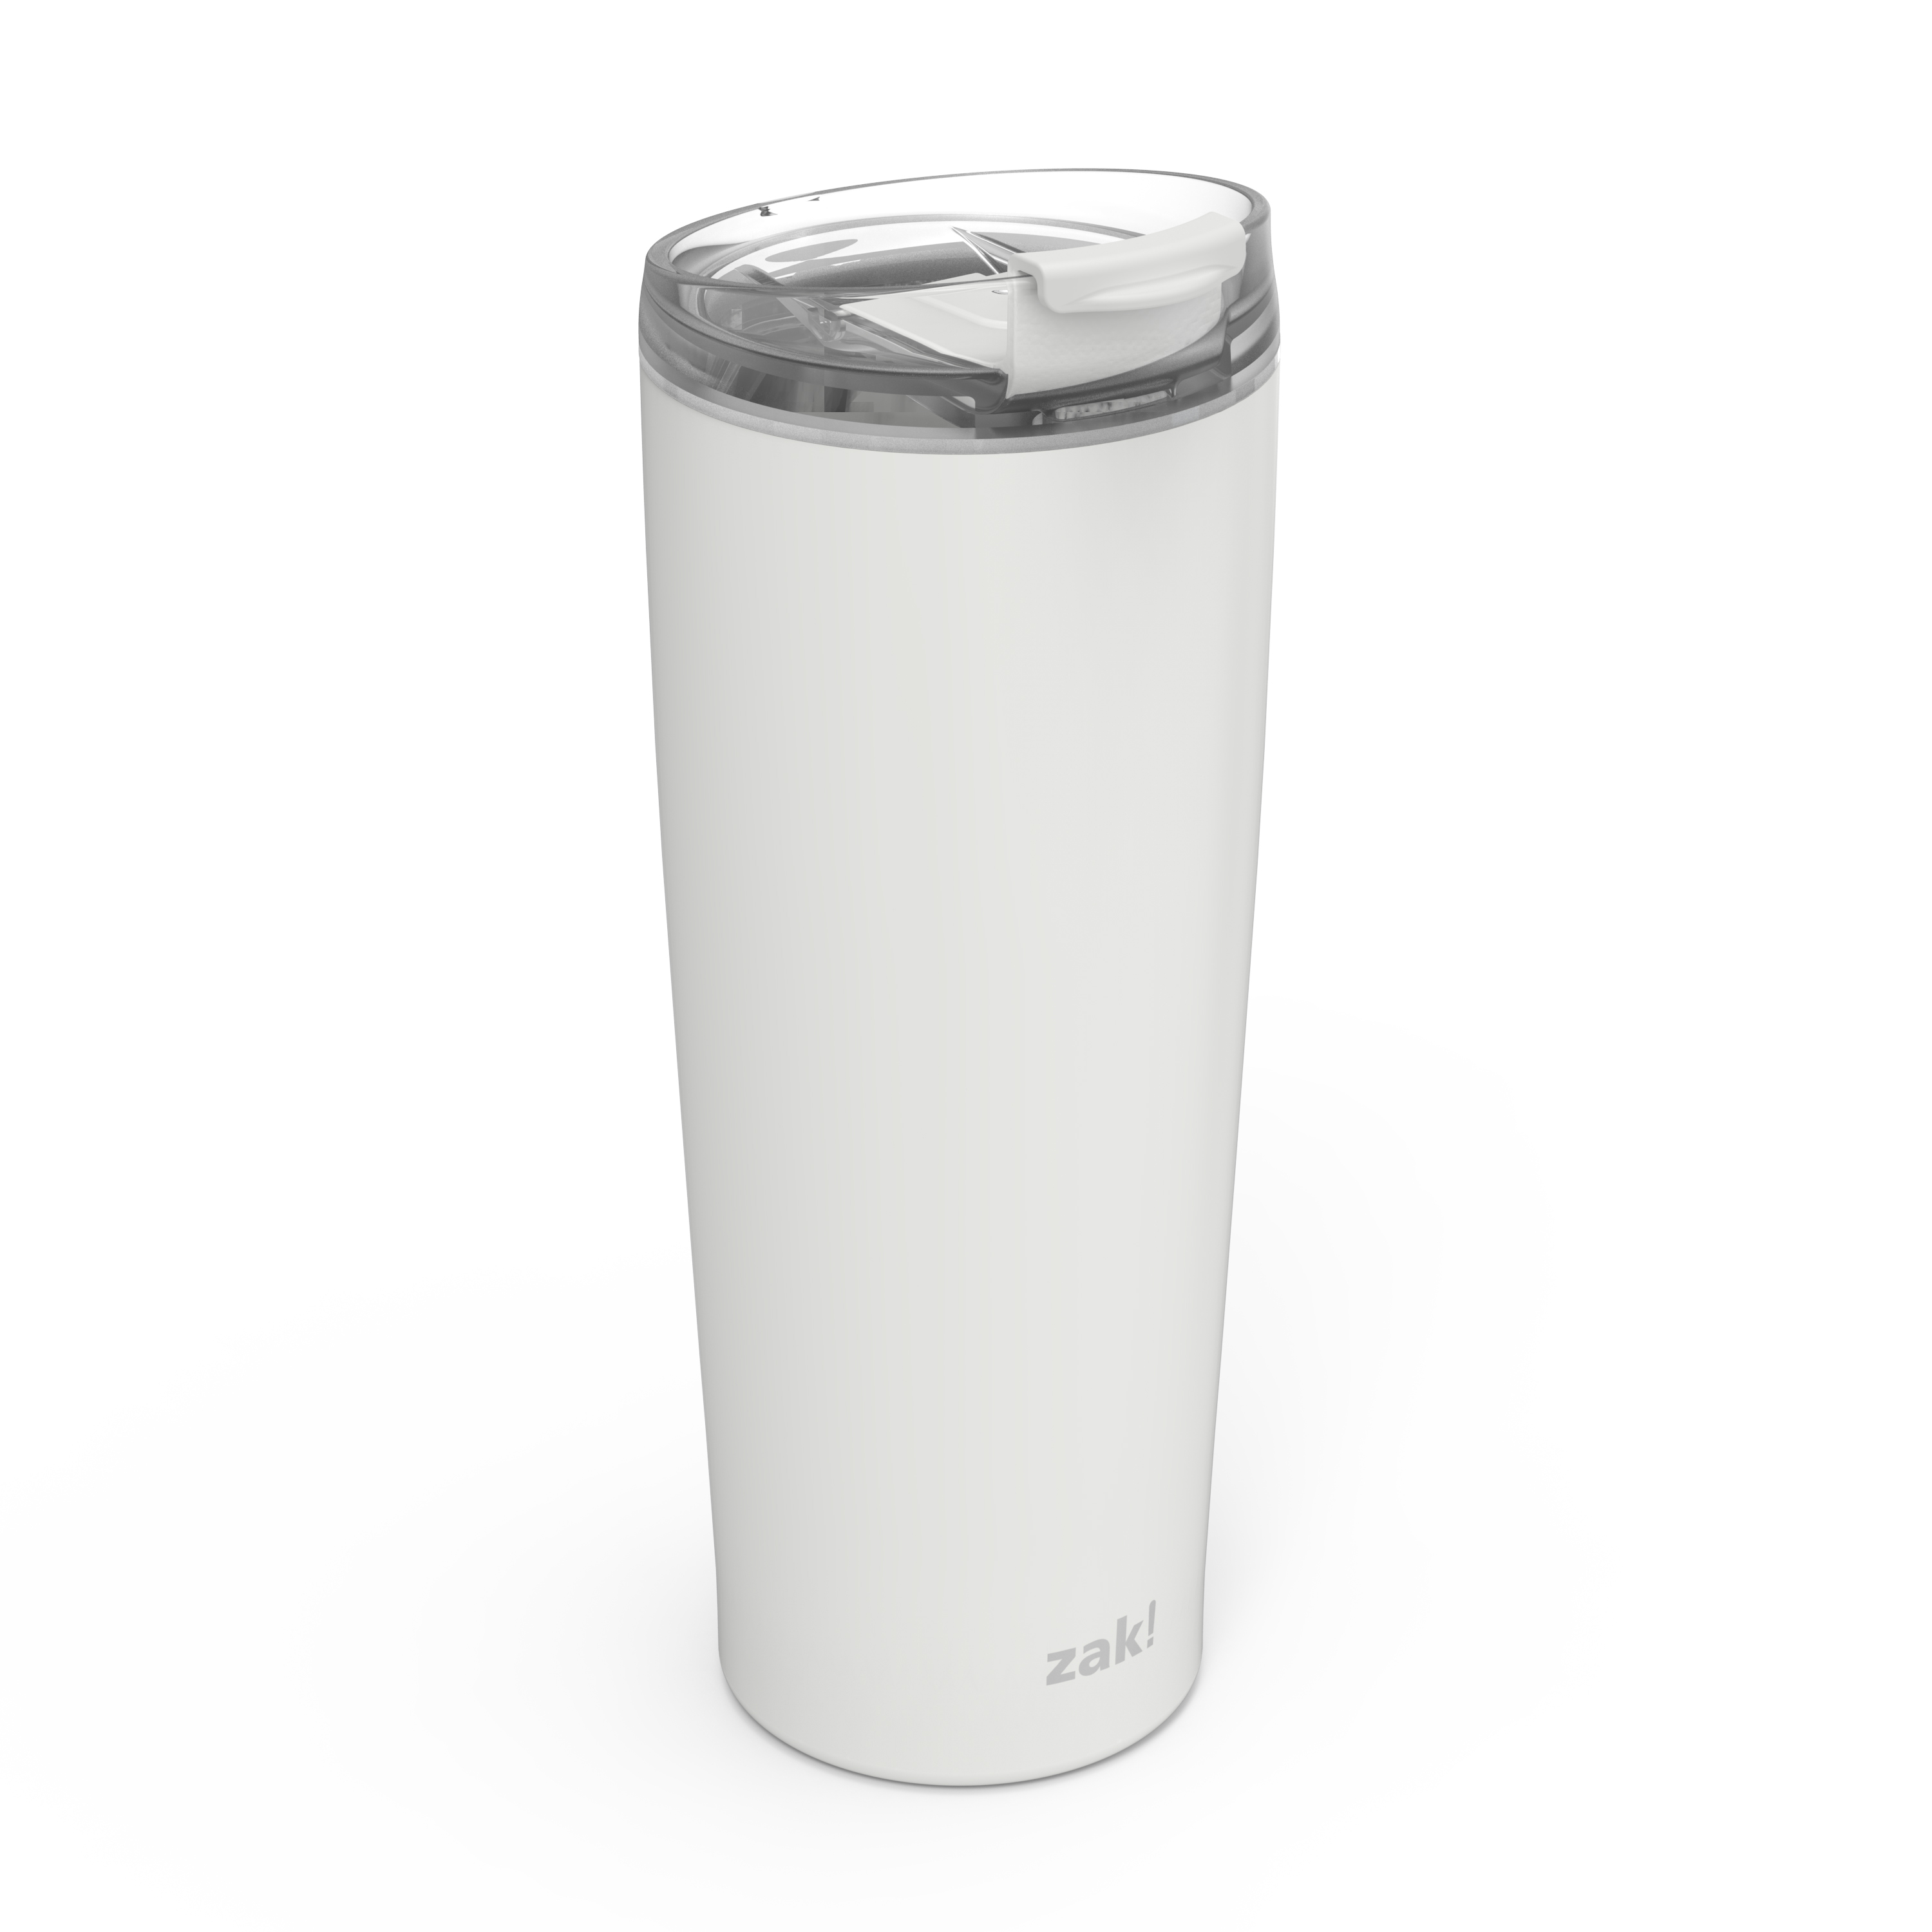 Aberdeen 24 ounce Vacuum Insulated Stainless Steel Tumbler, Gray slideshow image 4